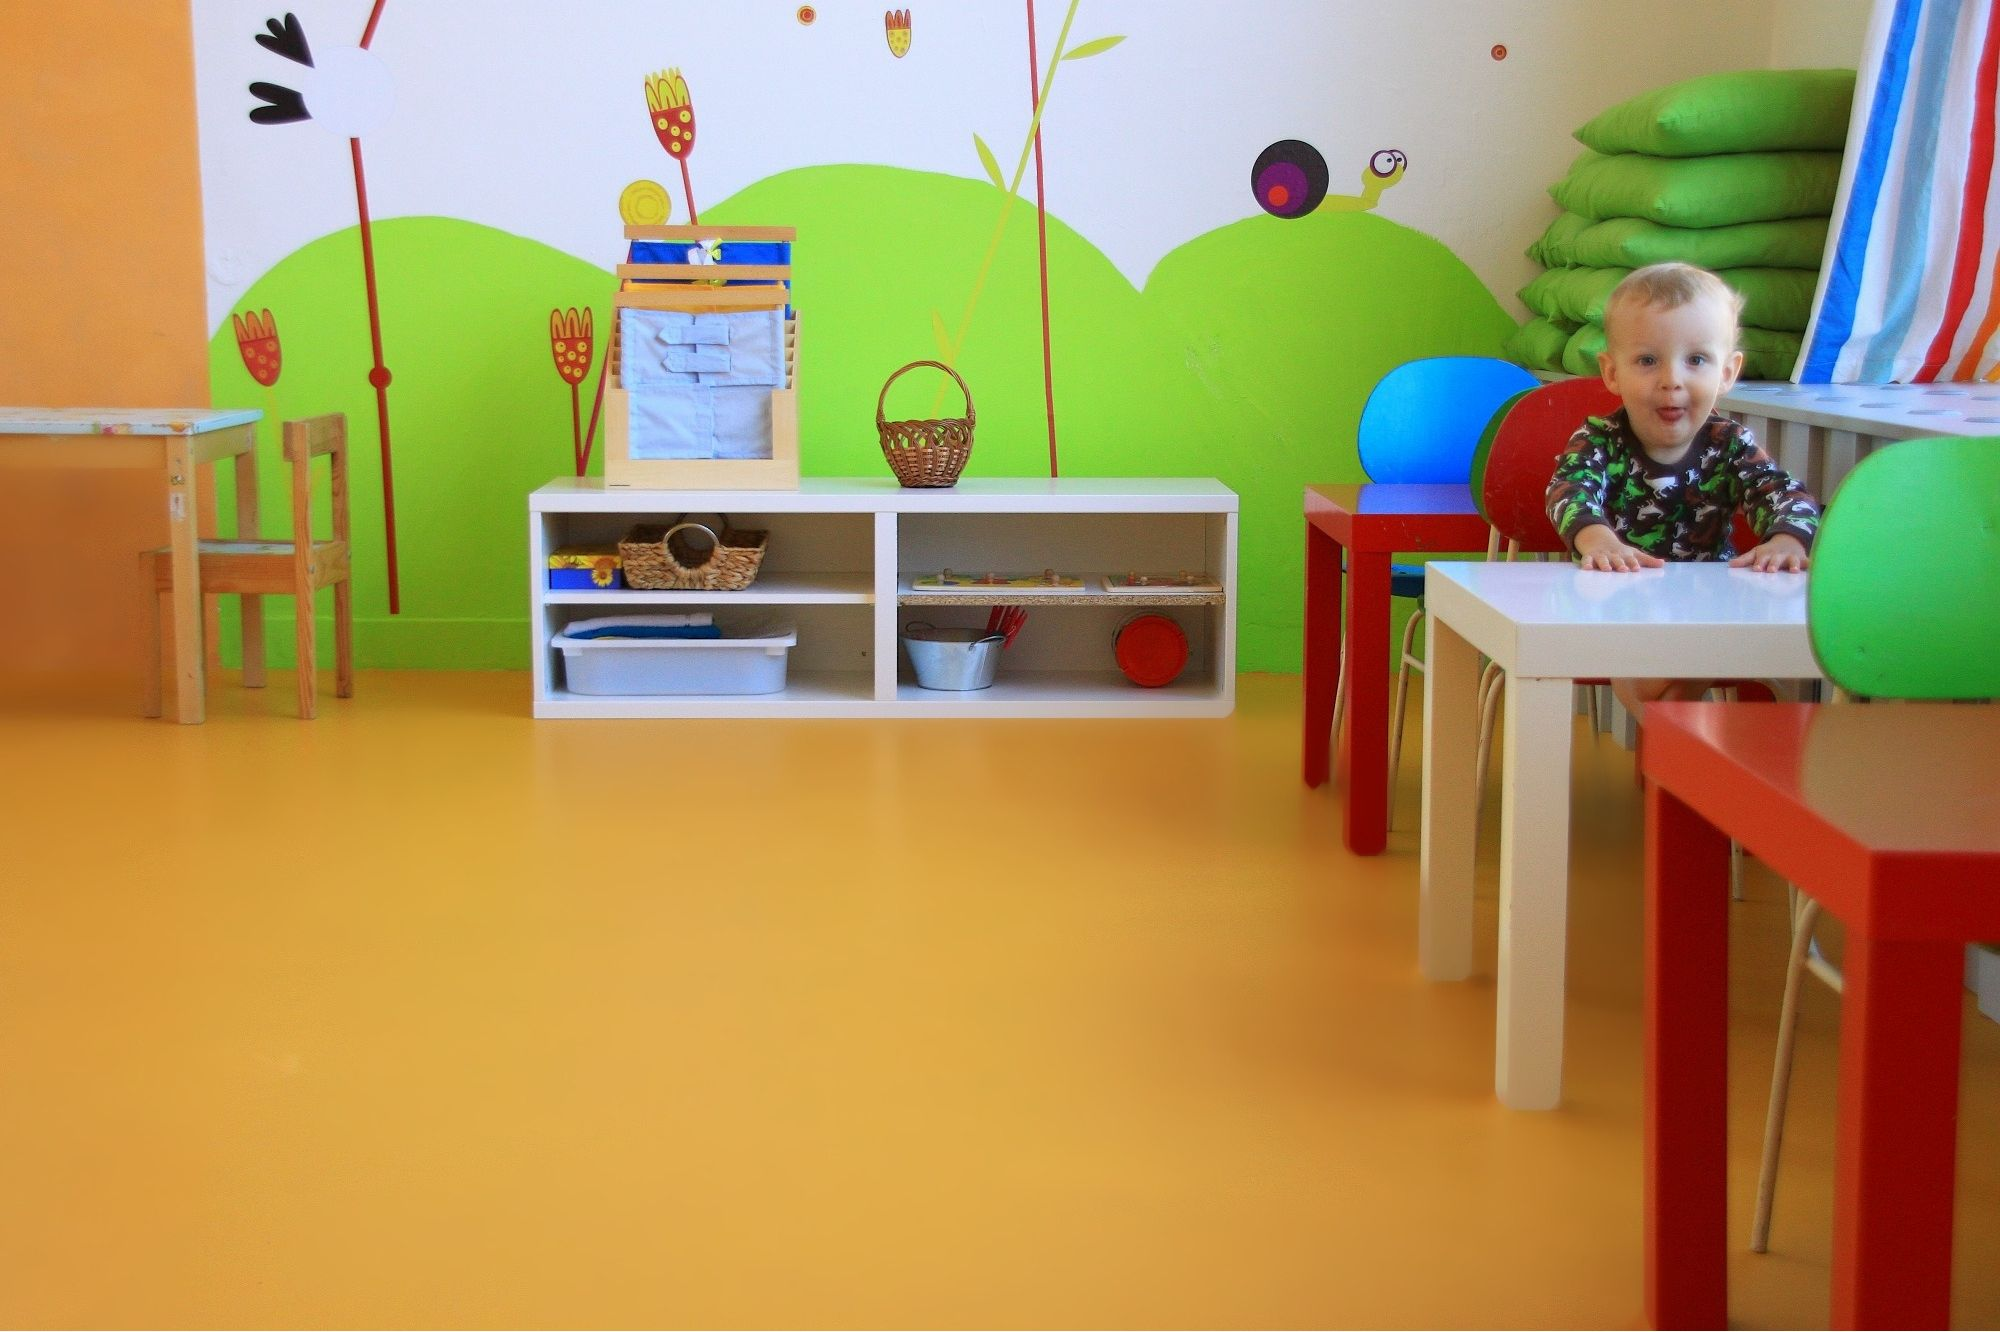 Sika ComfortFloor® orange floor in daycare with baby sitting on chair